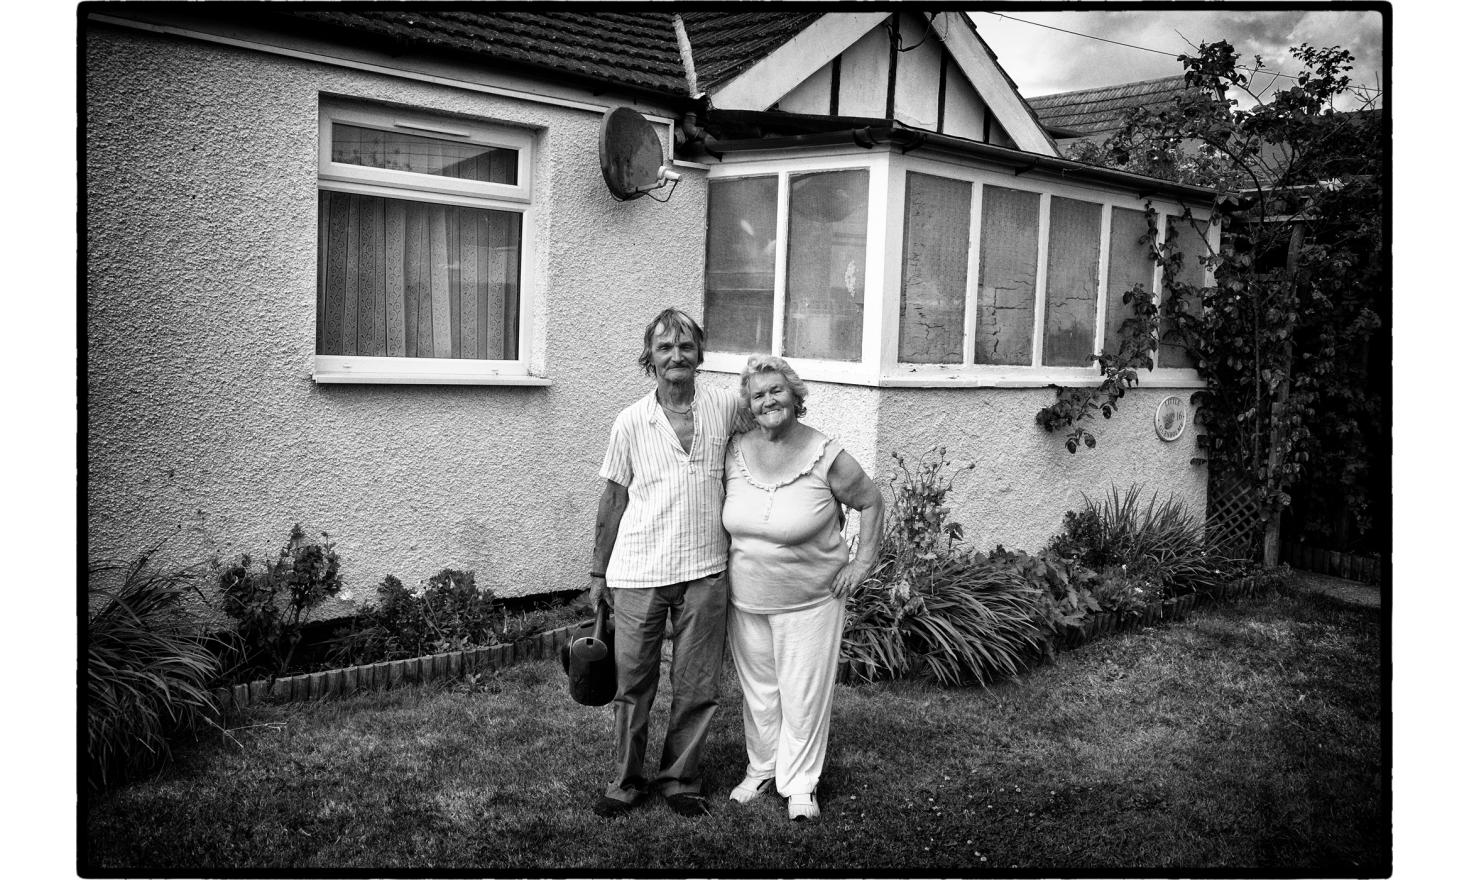 """Glenis and Roger are both 71. It has been a few years they moved to Jaywick. """"There is an amazing help here. We have never seen that elsewhere in England"""". Jaywick, England. July 2016."""